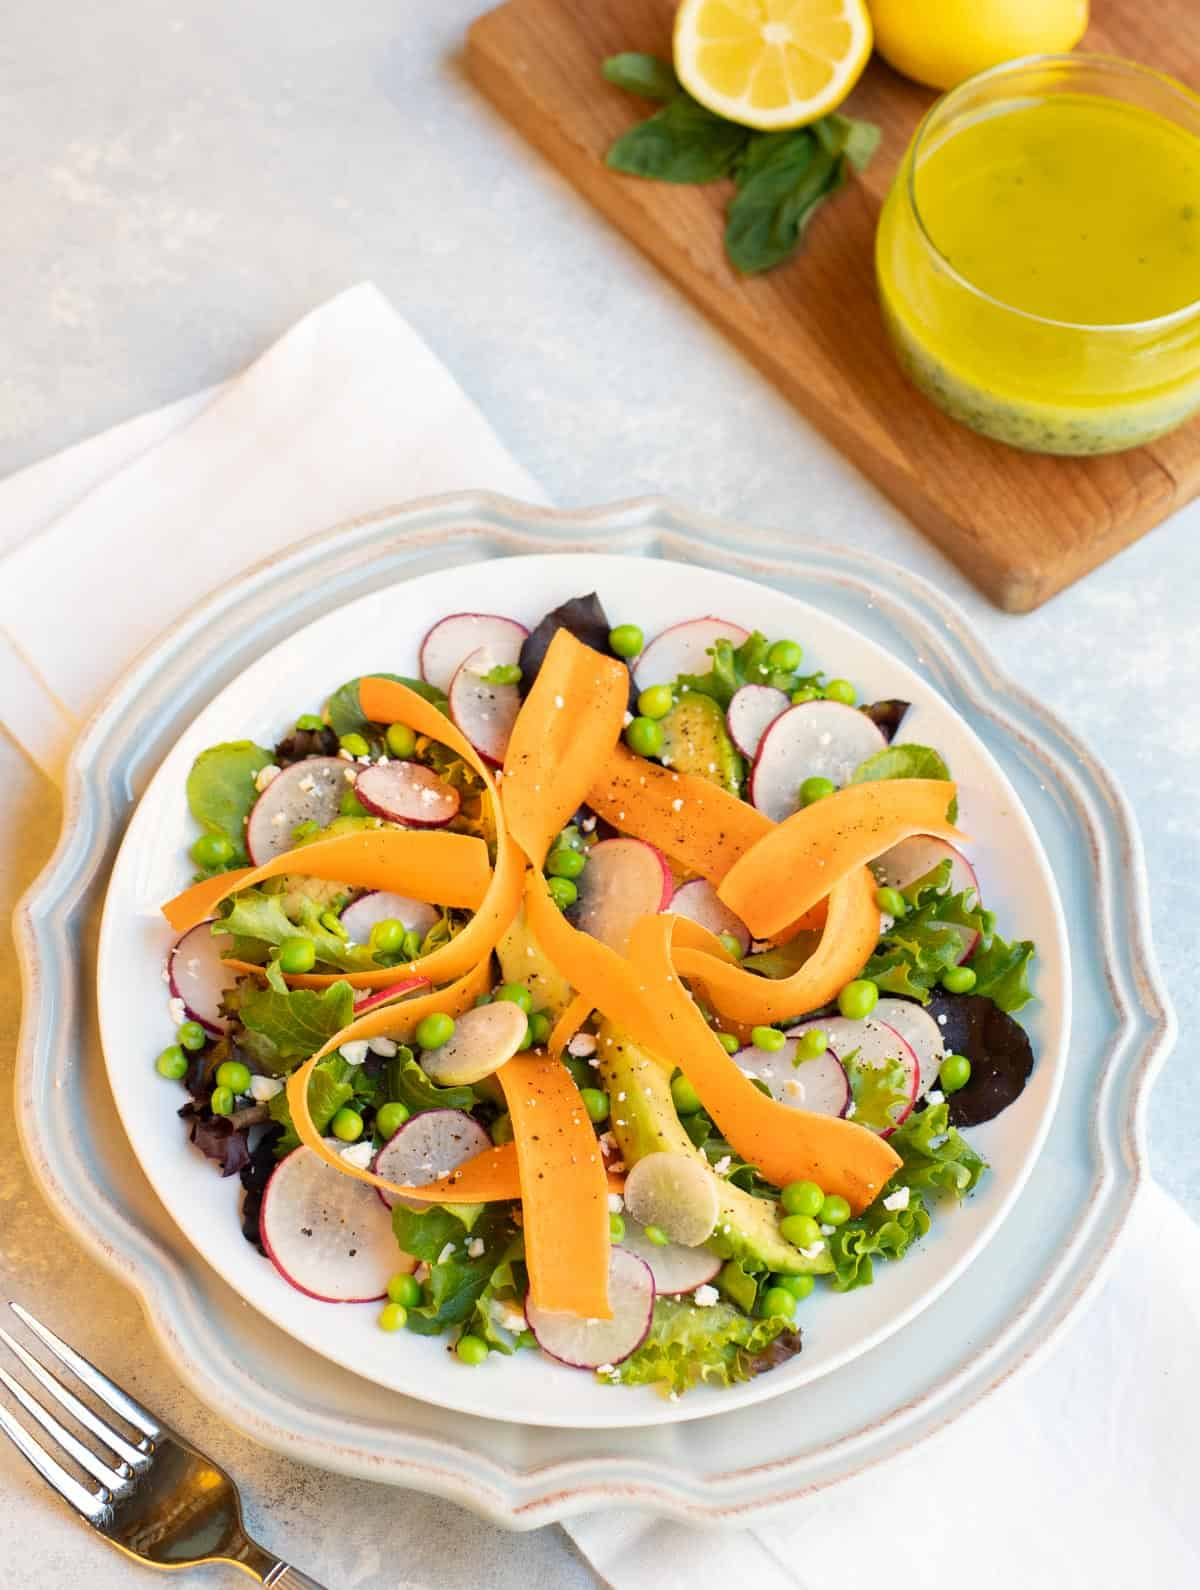 Shaved carrots, radishes and sweat peas arranged with lettuces and avocado and lemon basil vinaigrette